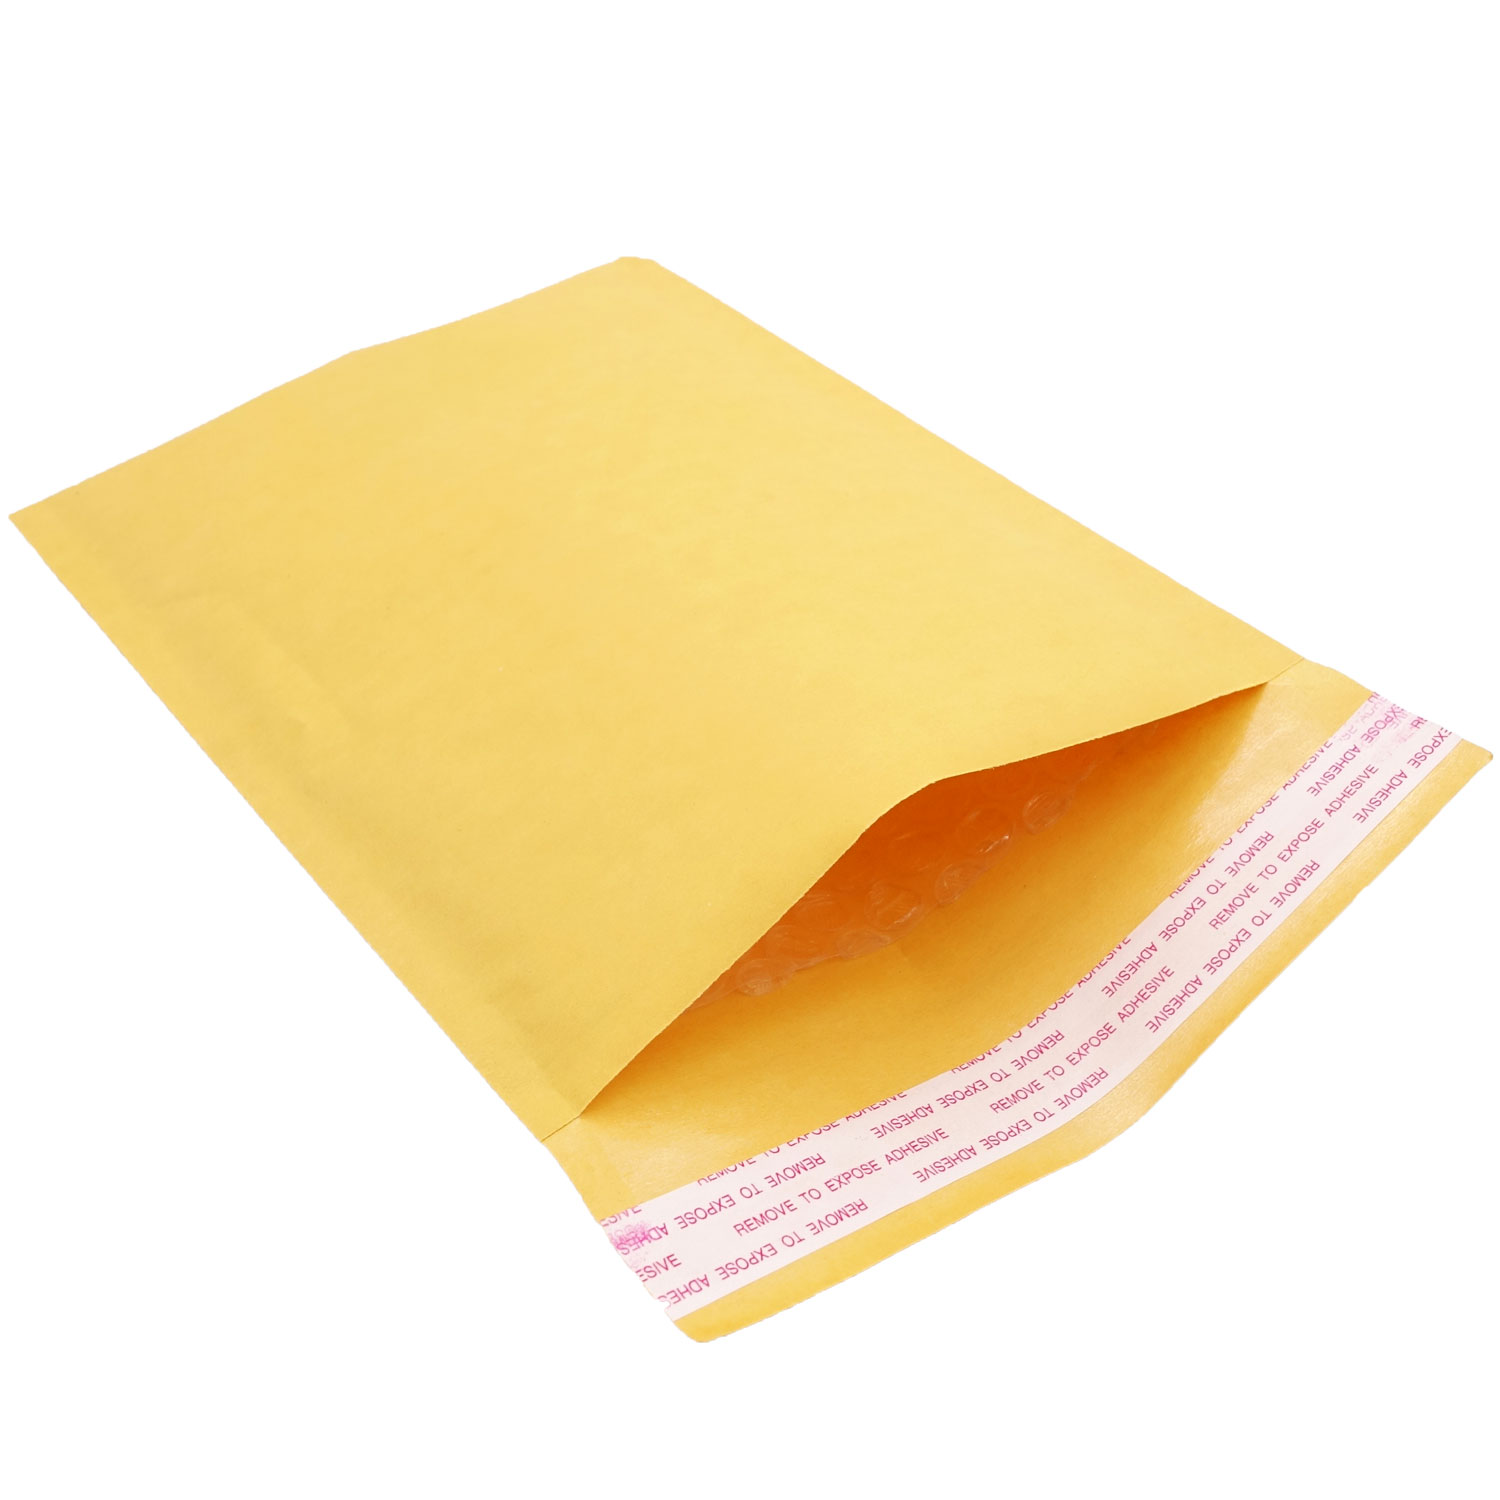 5 Size Kraft Bubble Mailer Padded Envelope Mailers Shipping Bag